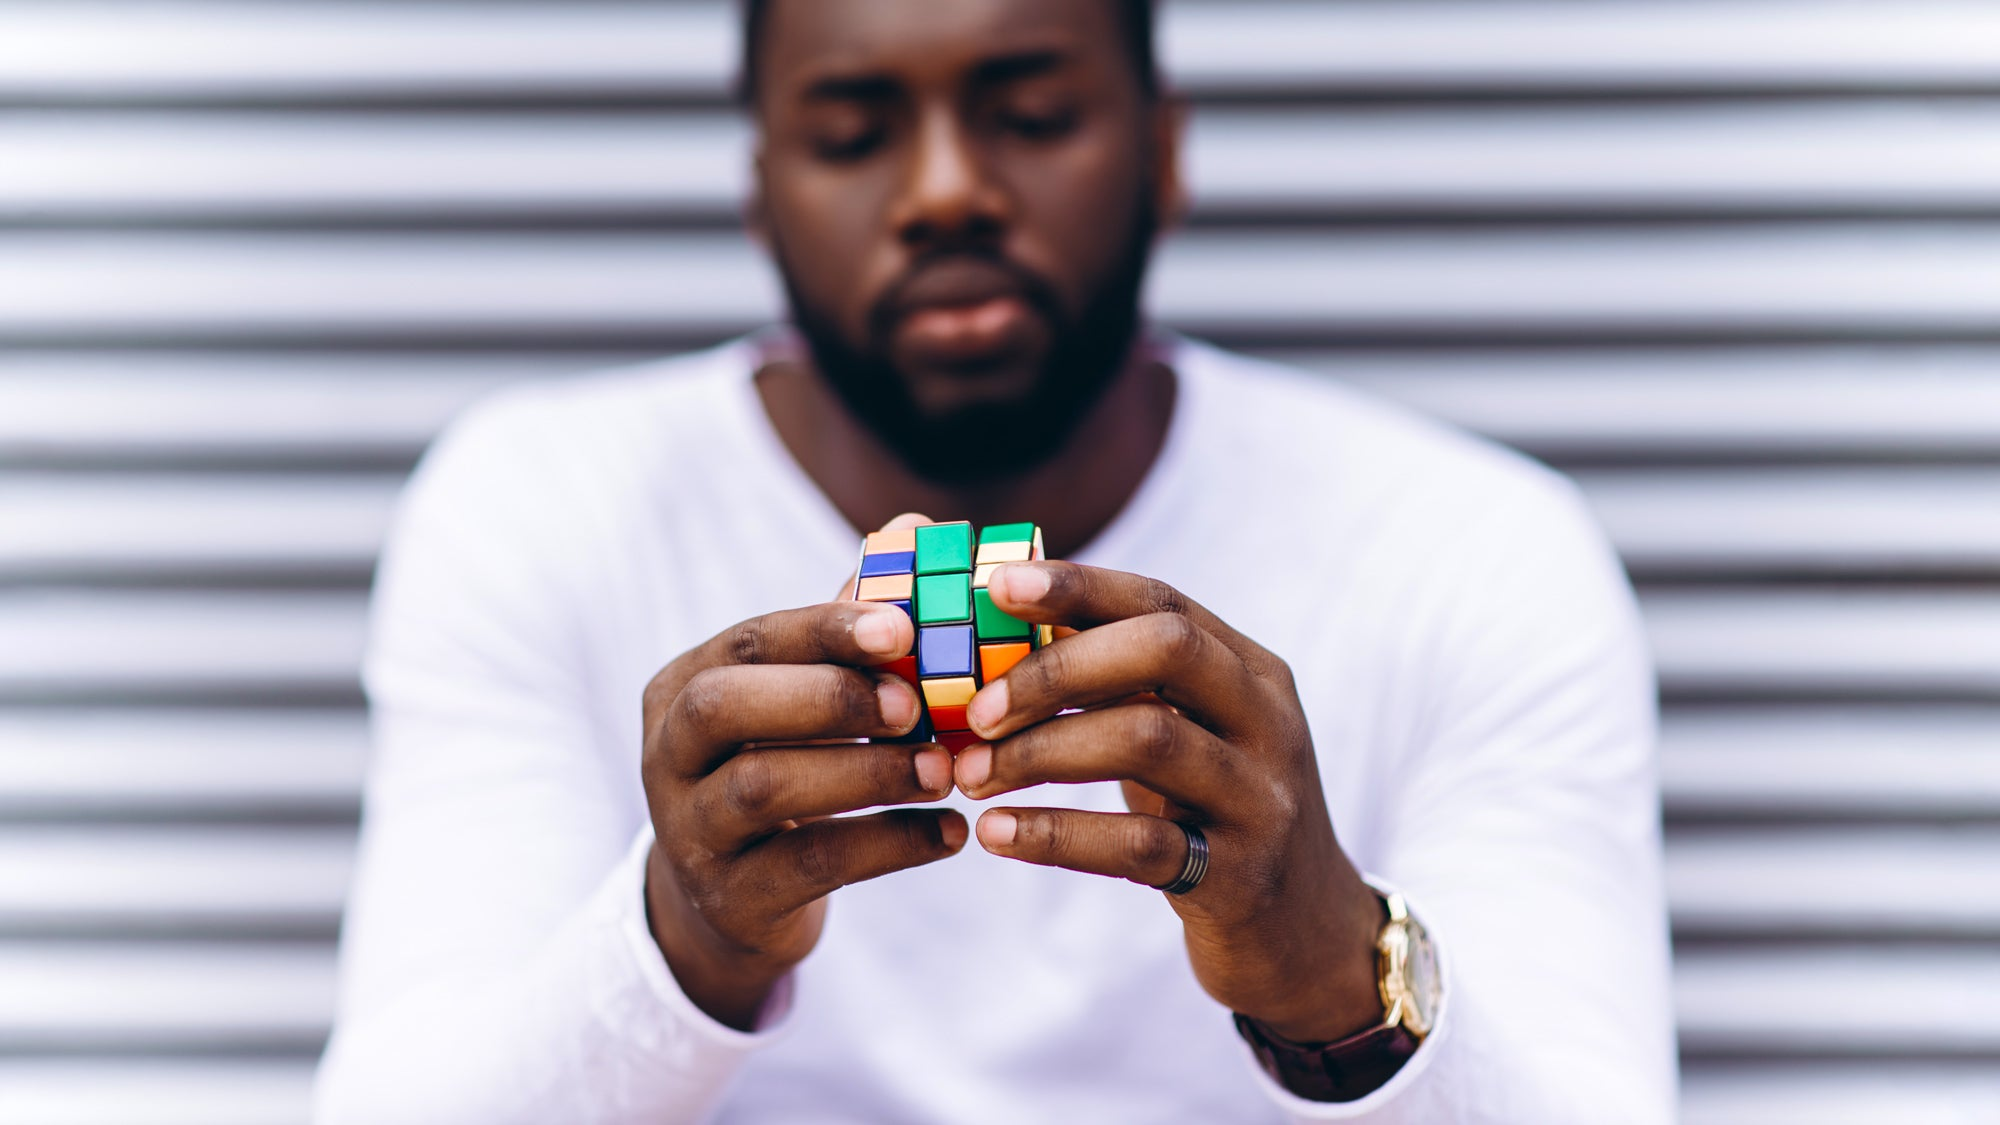 The Best Apps For Solving A Rubik's Cube